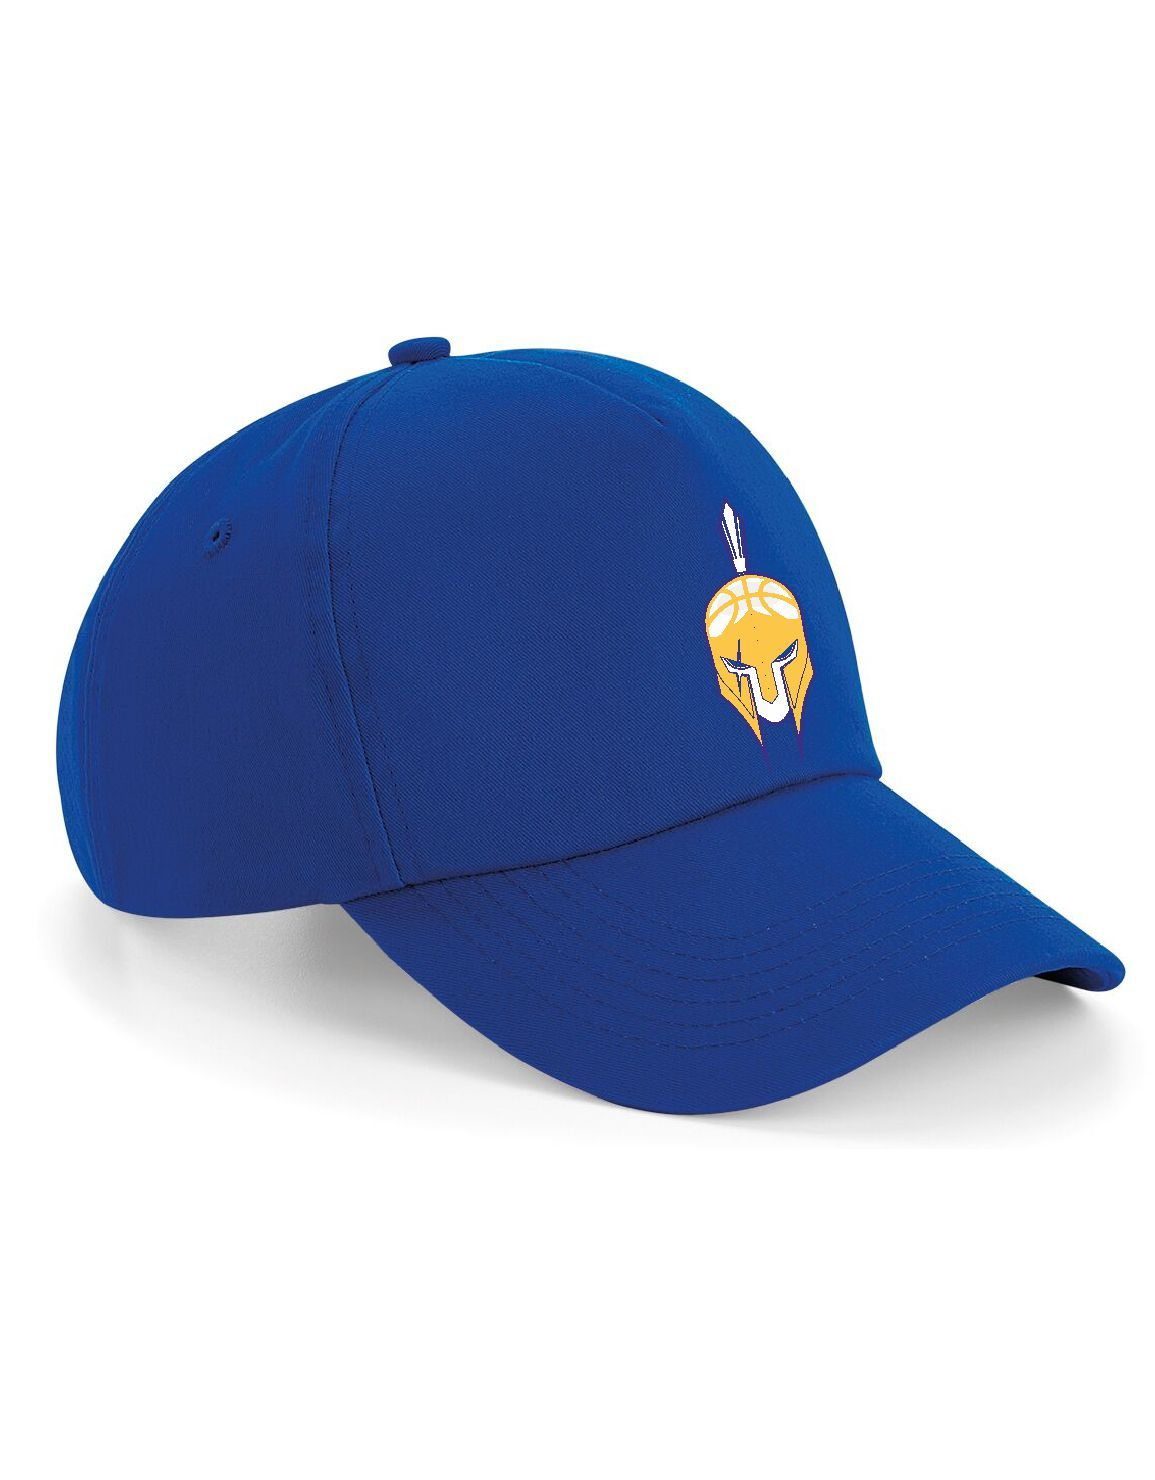 Warriors - Cap (Royal Blue)